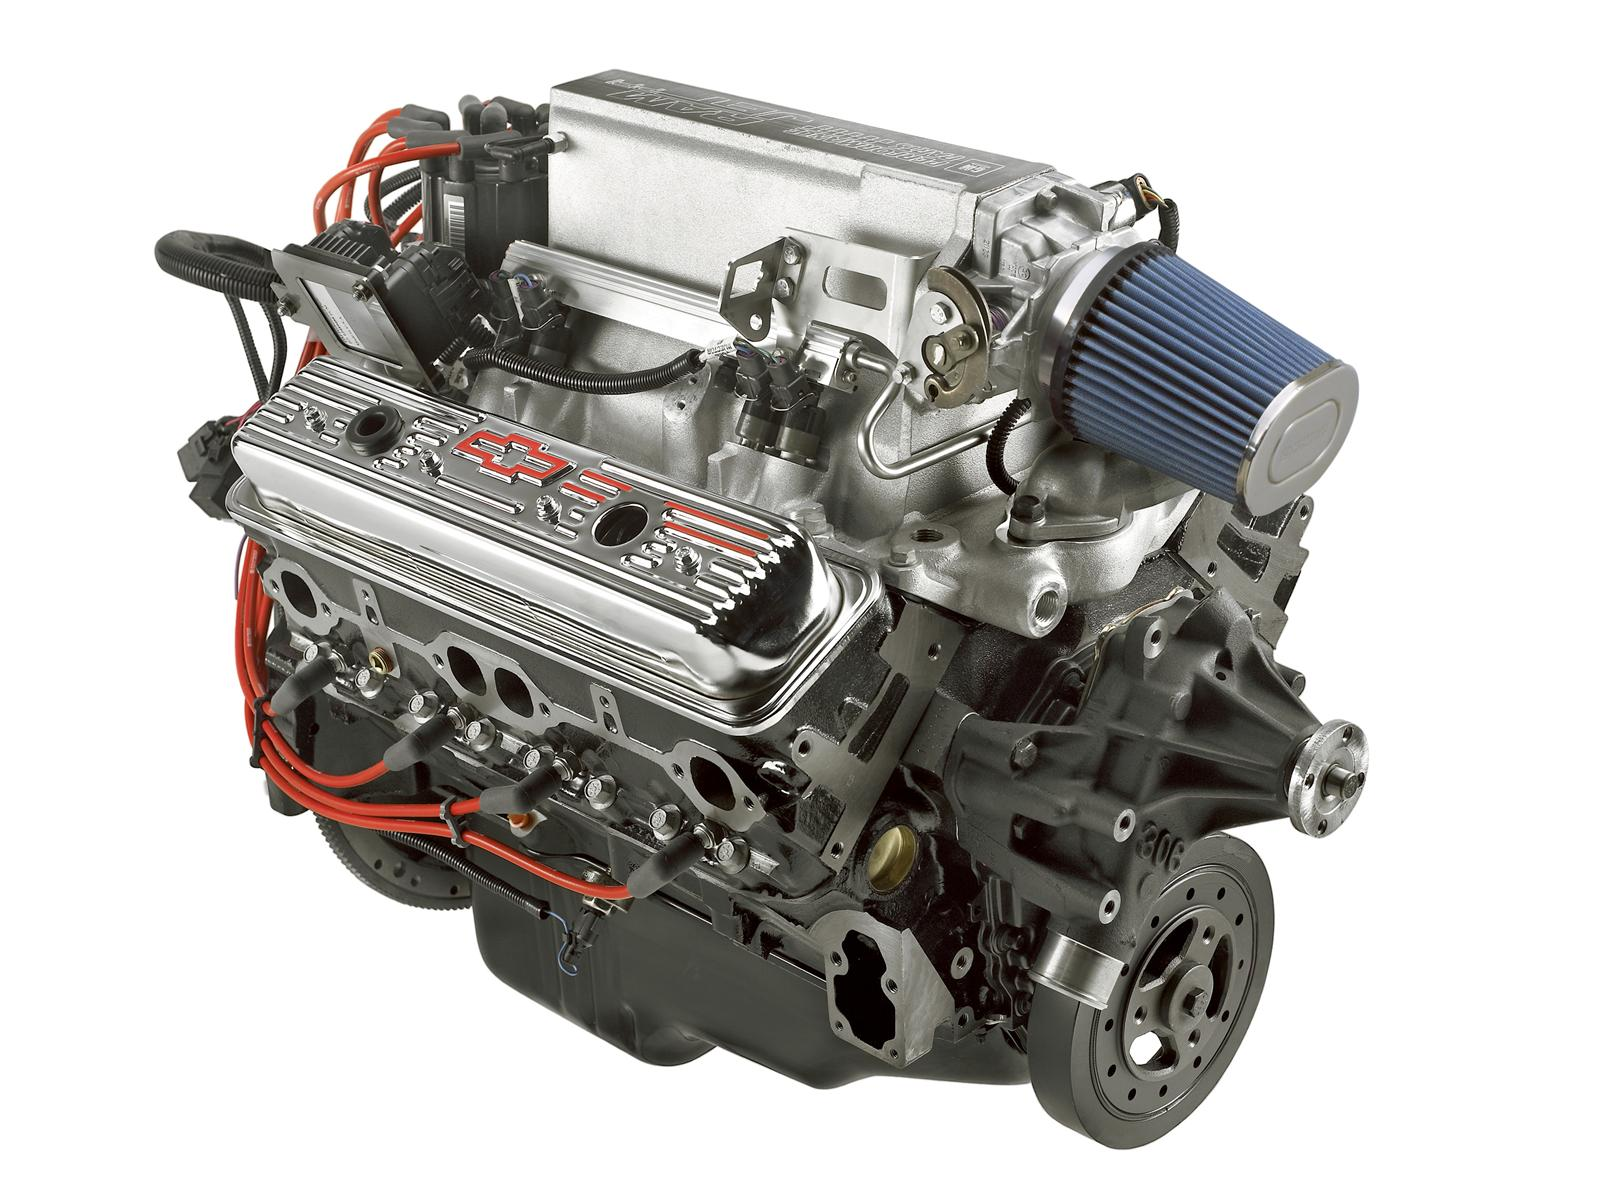 Chevrolet Performance Ram Jet 350 C.I.D. 351 HP Long Block Crate Engines  12499120 - Free Shipping on Orders Over $49 at Summit Racing